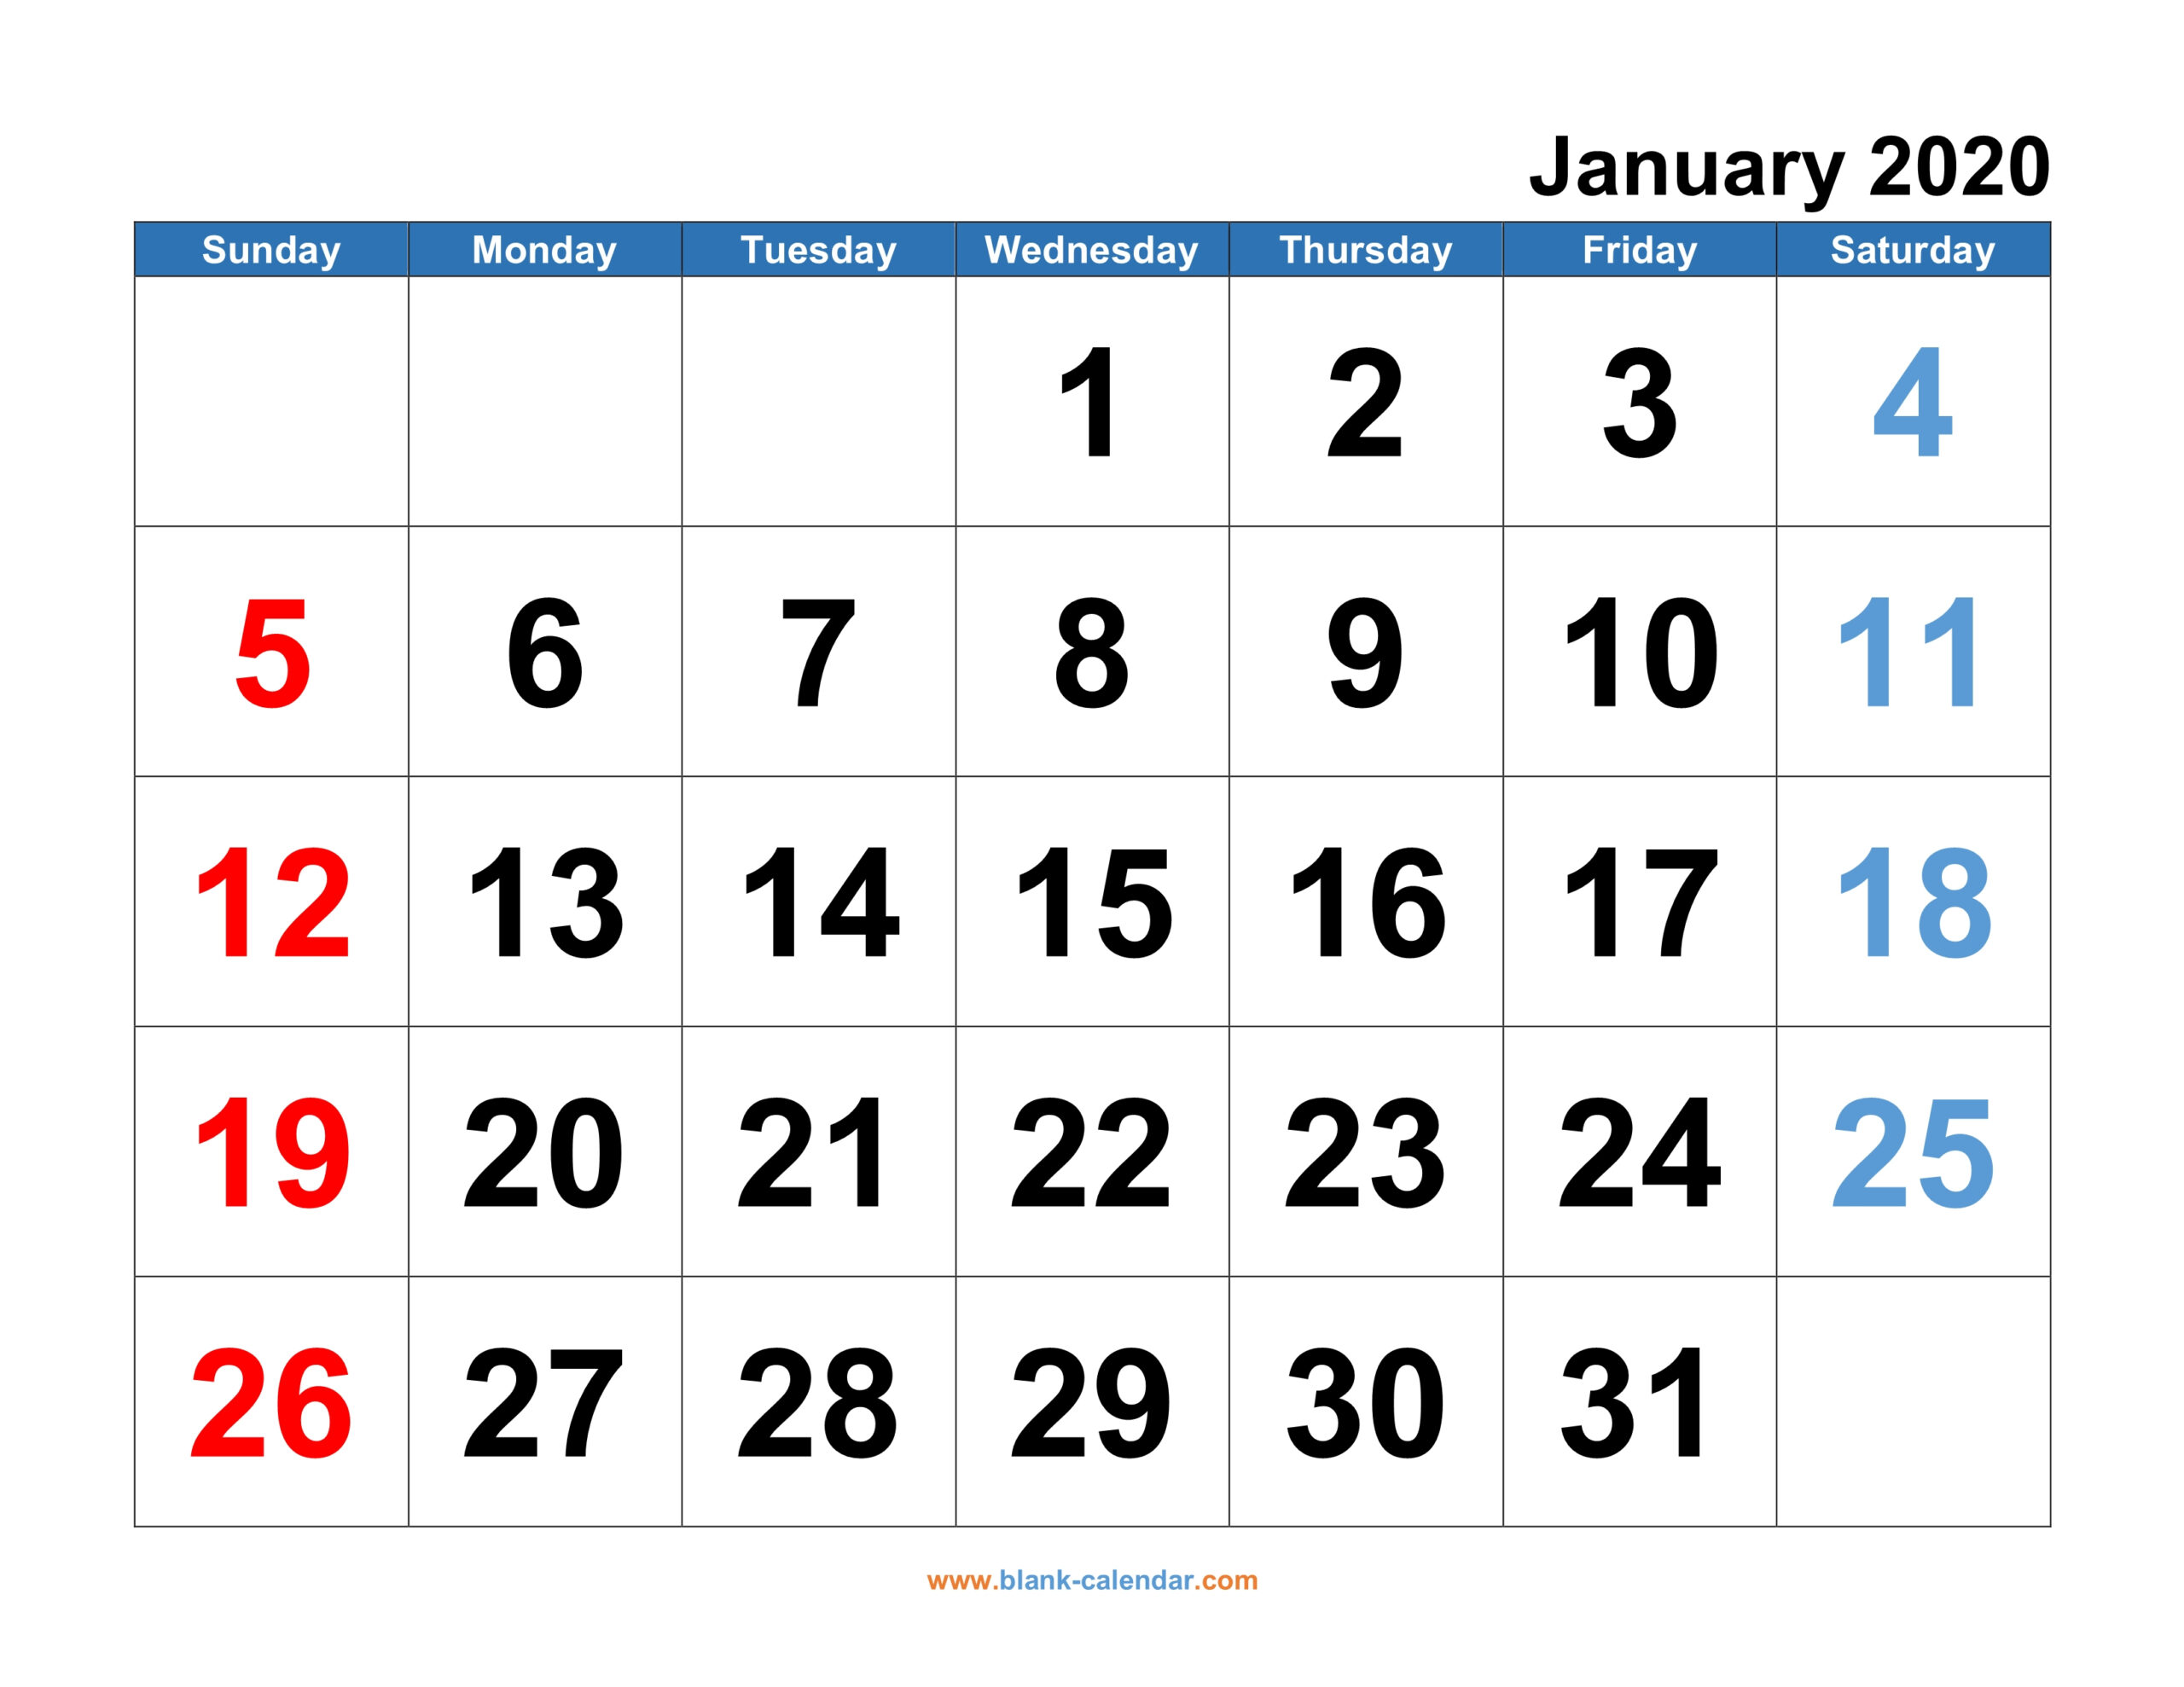 Monthly Calendar 2020 | Free Download, Editable And Printable within Free Monthly Calendar Printable And Editable